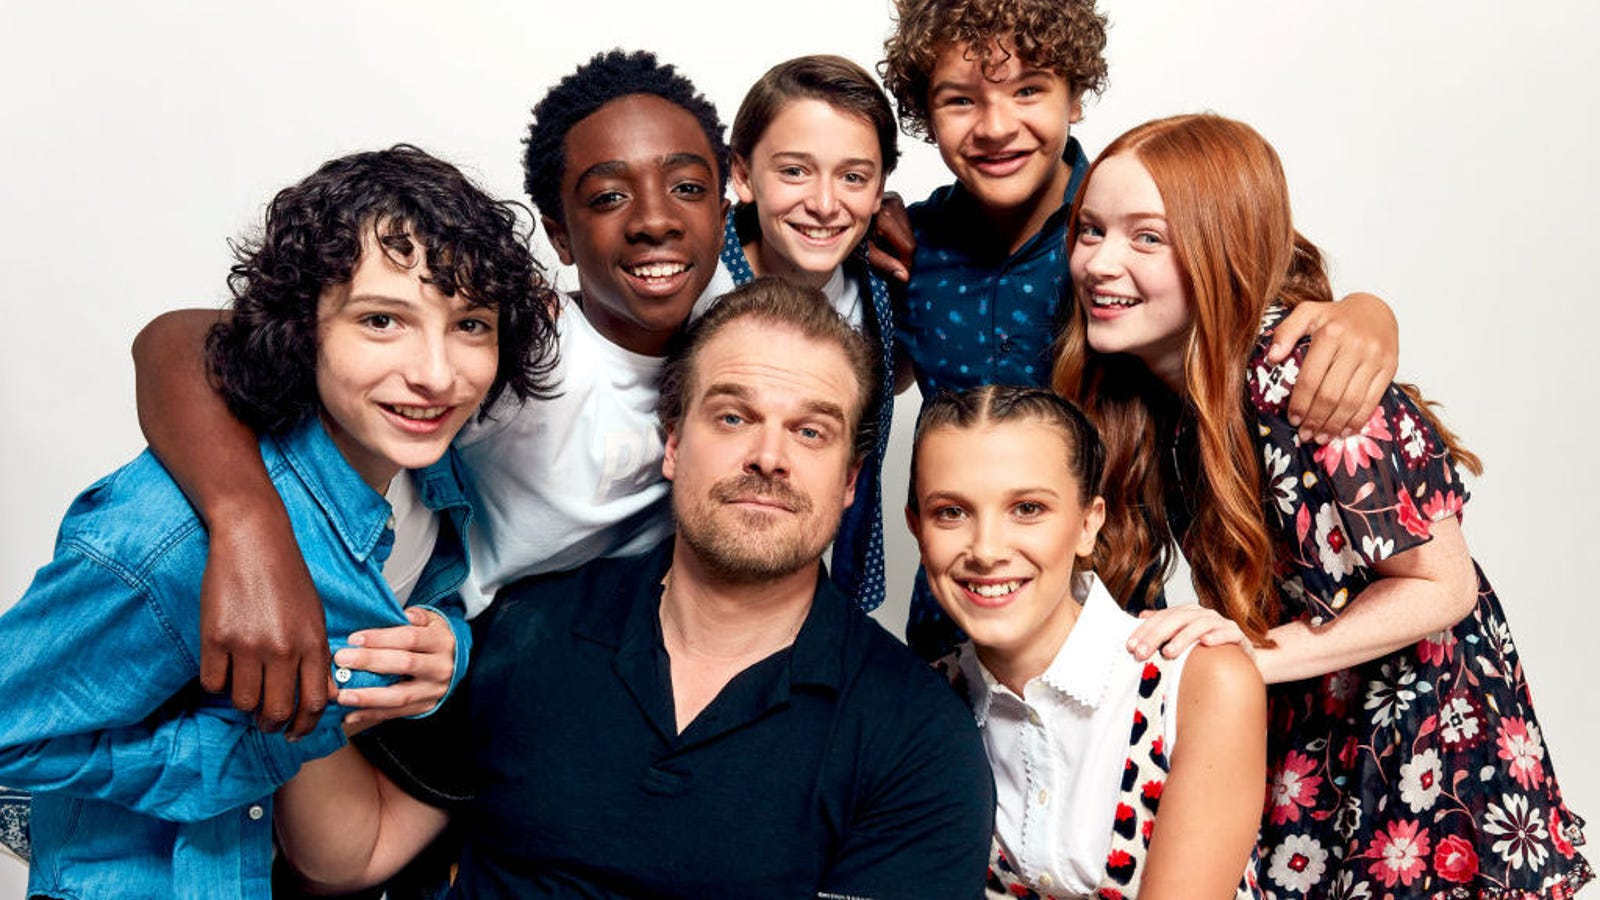 Stranger Things 3 will be set in 1985 and have lots more of